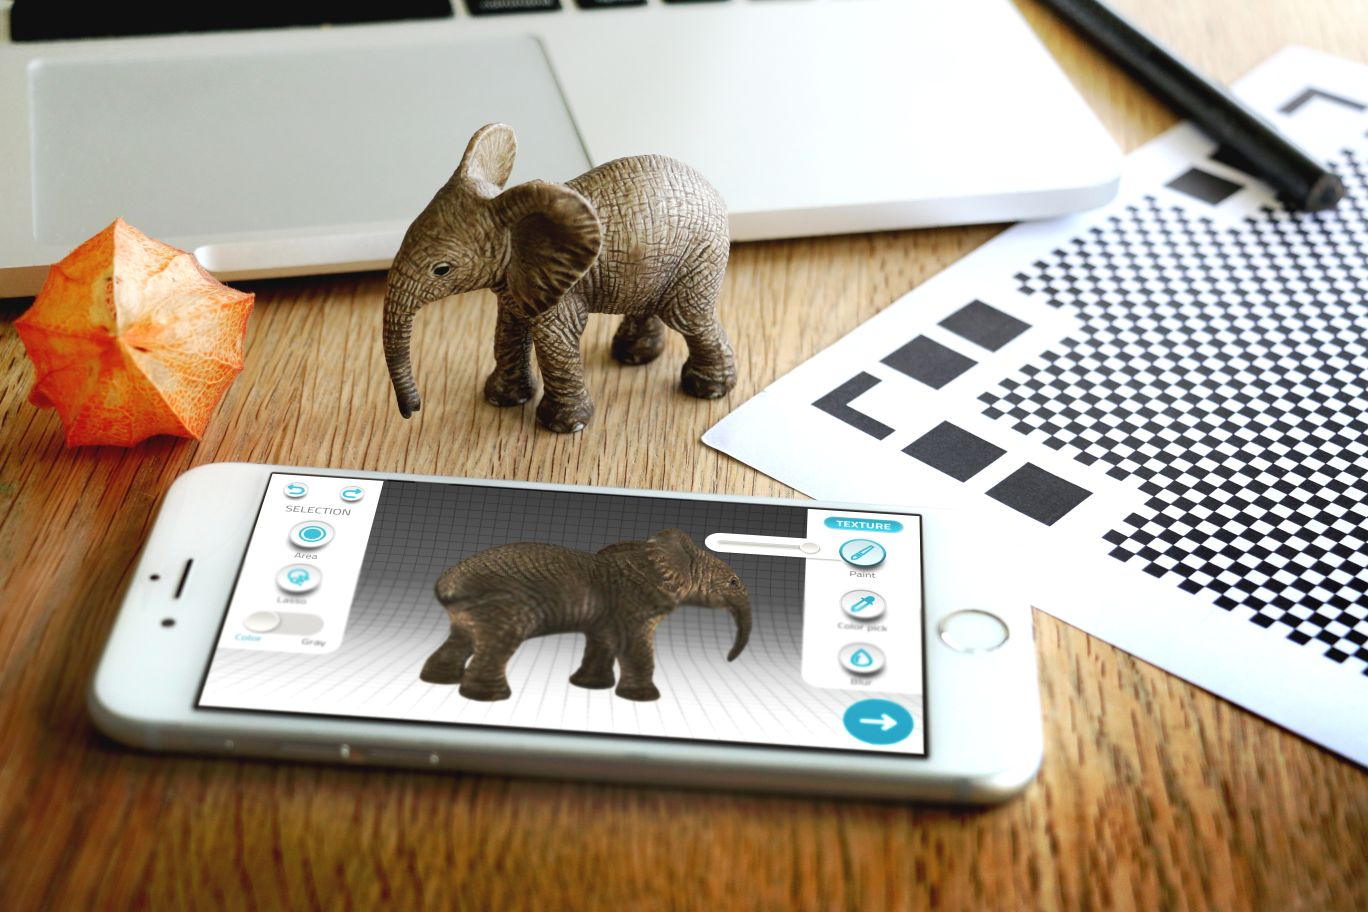 3D Scan Real Objects with Qlone and 3D Print Them with i.materialise